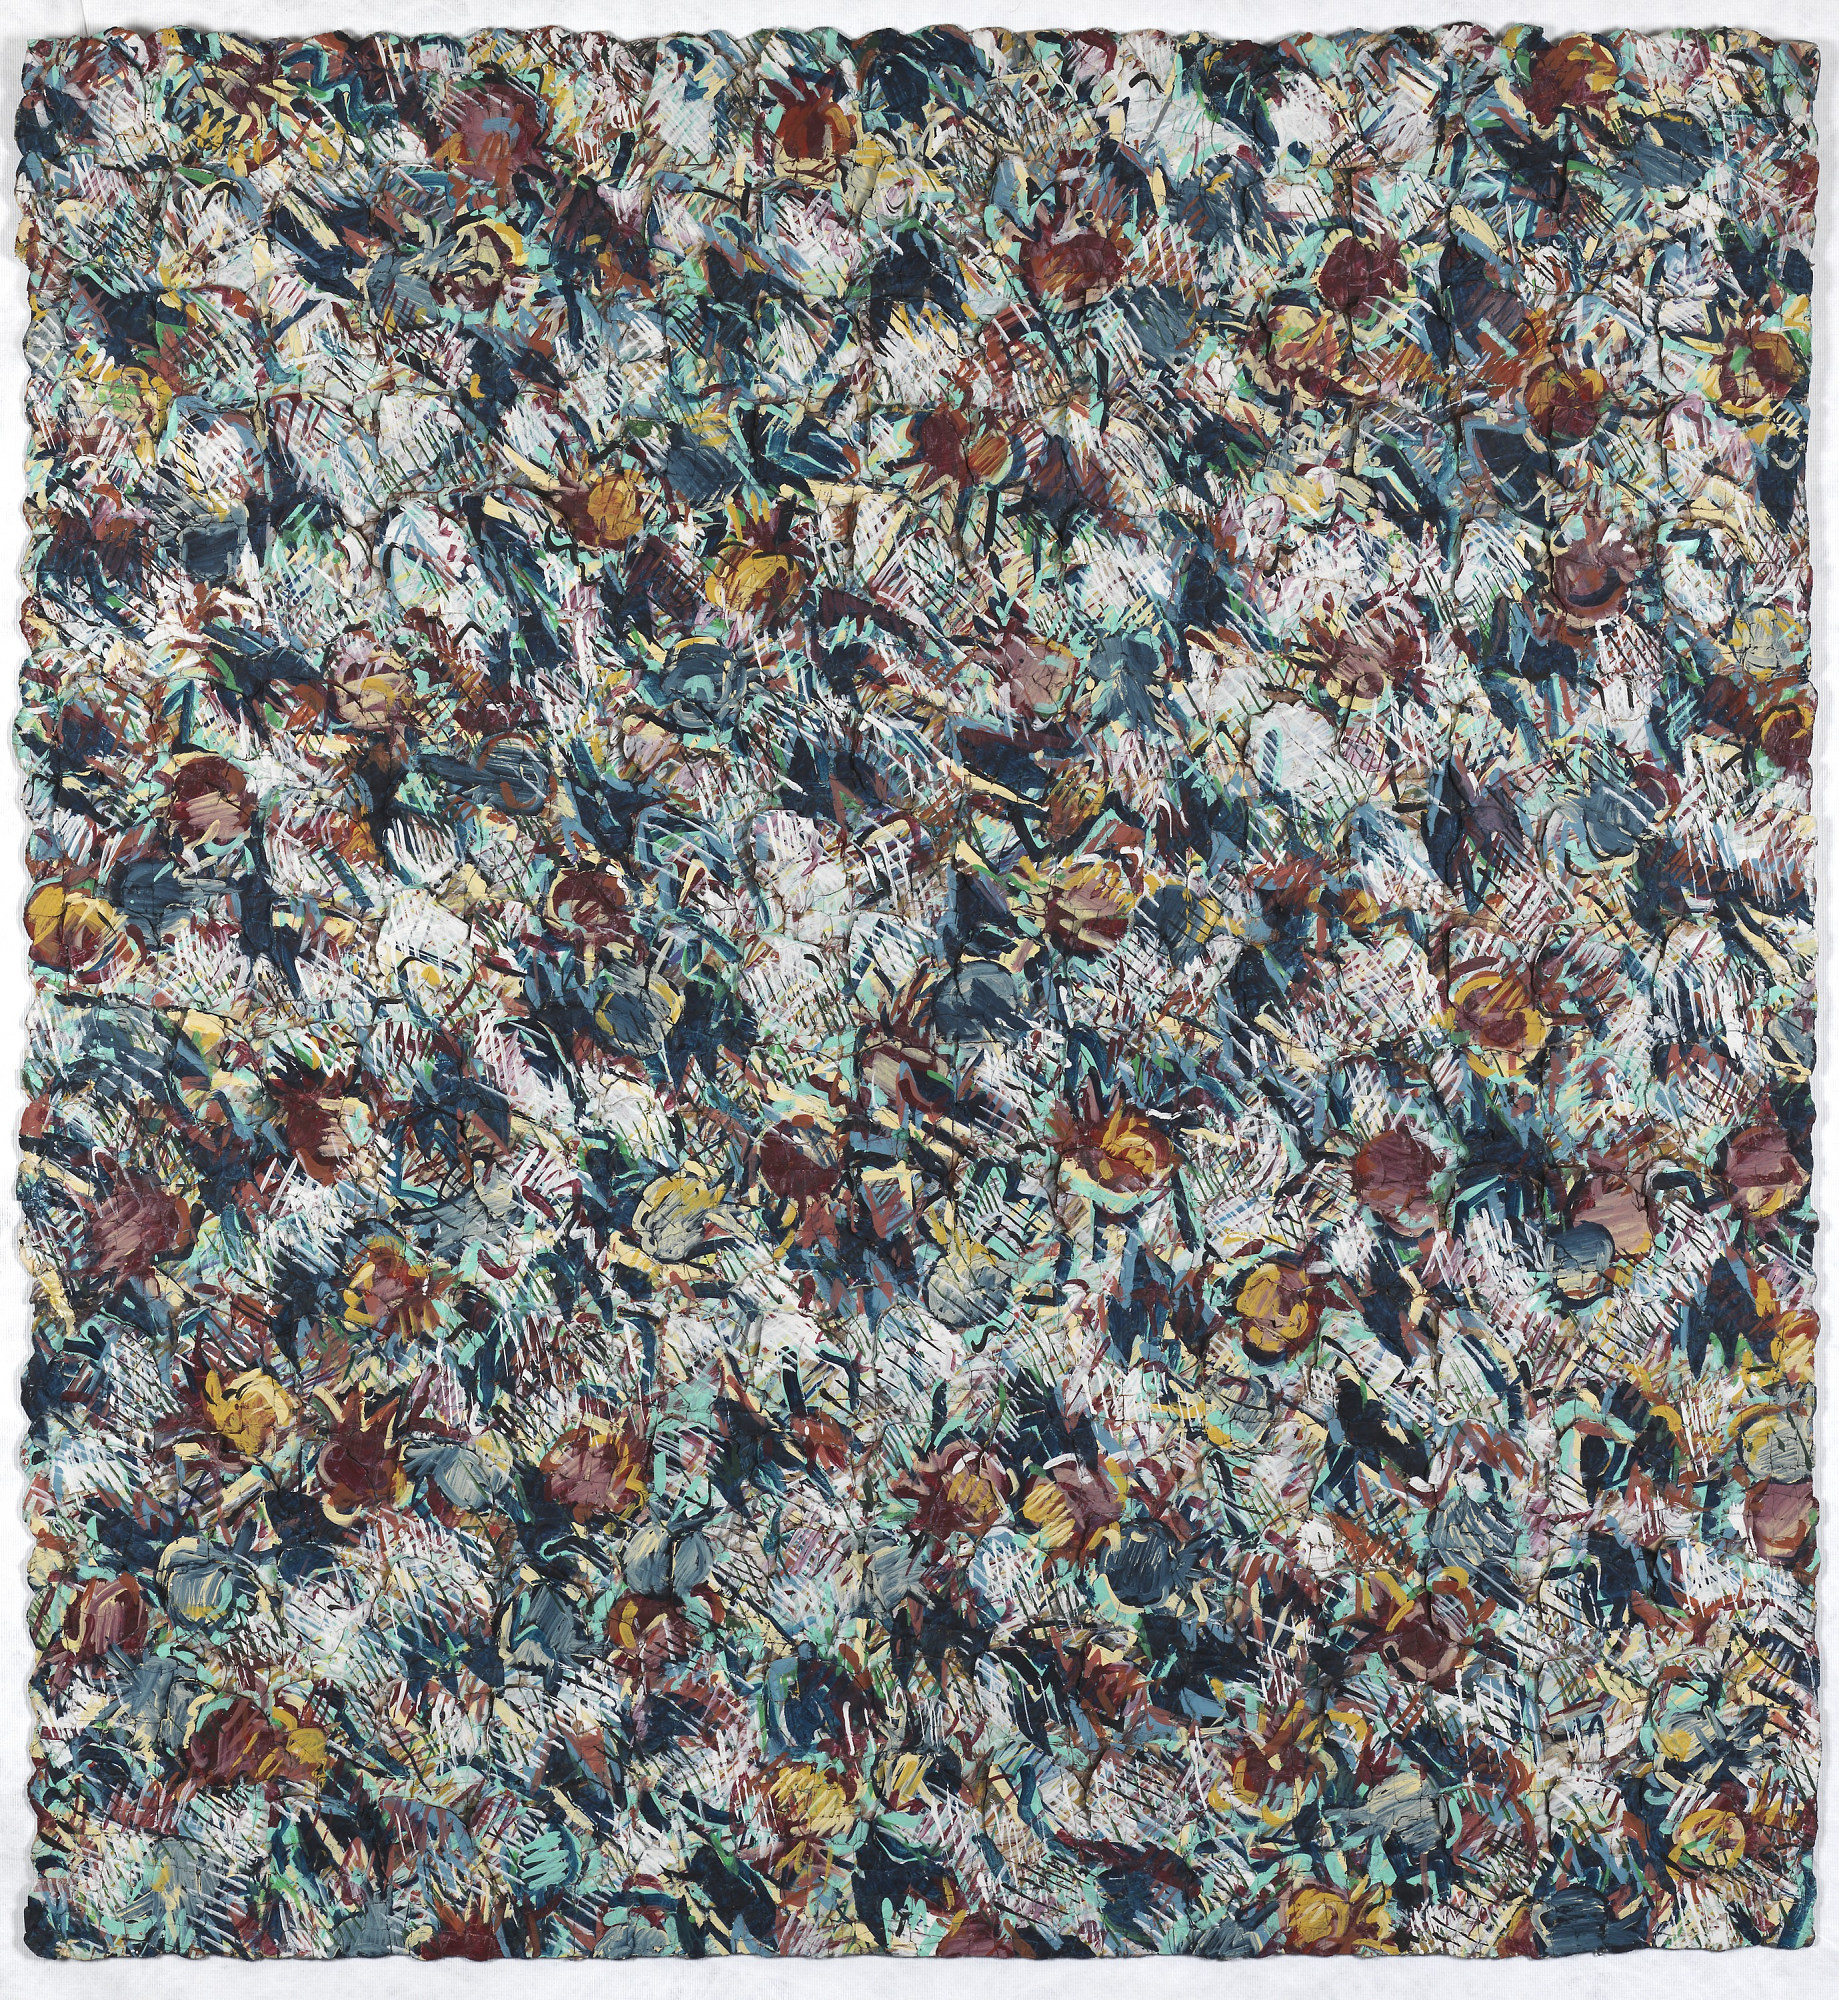 Neda Alhilali, Granadias, 1984, dyed, pressed, plaited, and painted paper on canvas, Smithsonian American Art Museum, Gift of Bernard and Sherley Koteen, 2001